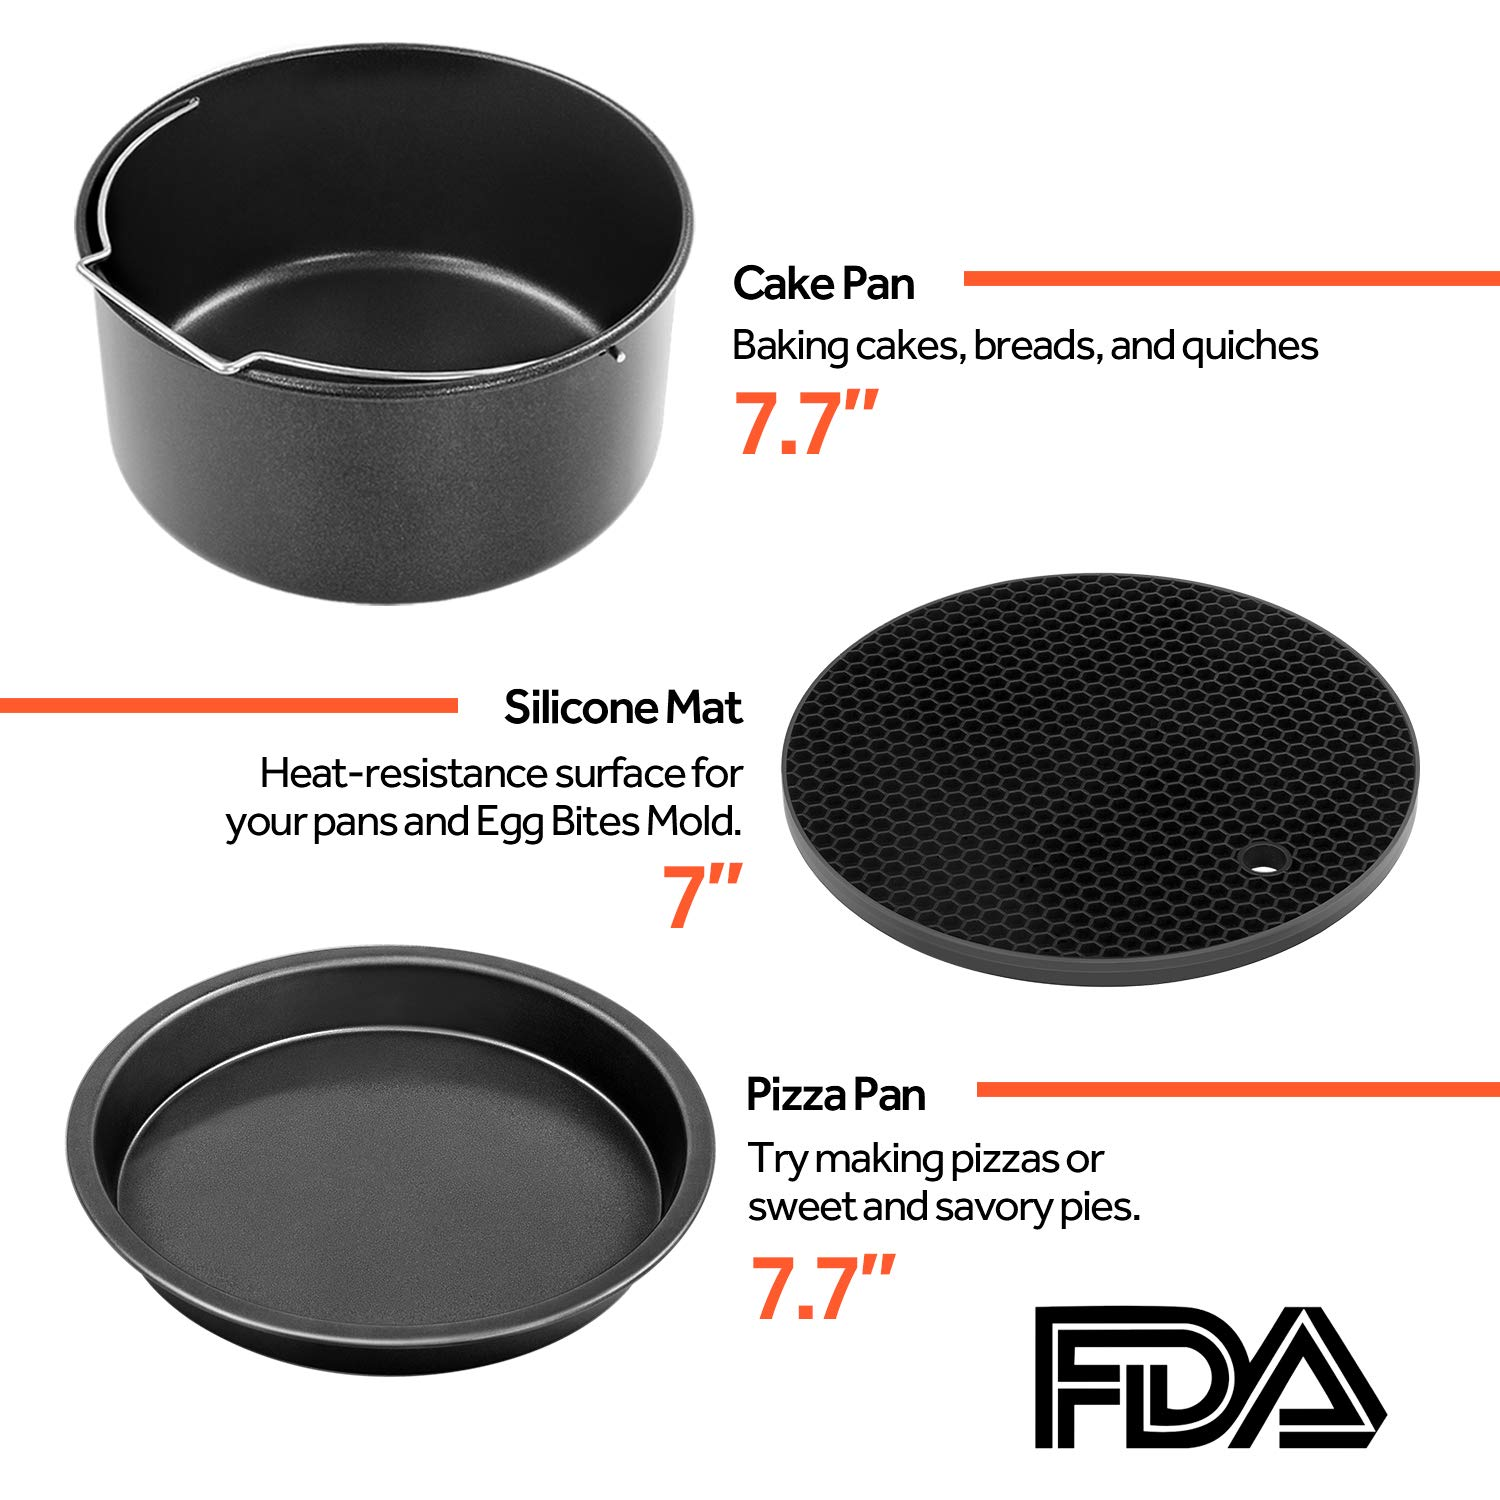 COSORI Air Fryer Accessories XL (C158-6AC), Set of 6 Fit all 5.3Qt, 5.8Qt, 6Qt Air Fryer, FDA Compliant, BPA Free, Dishwasher Safe, Nonstick Coating, 2-Year Warranty by COSORI (Image #4)